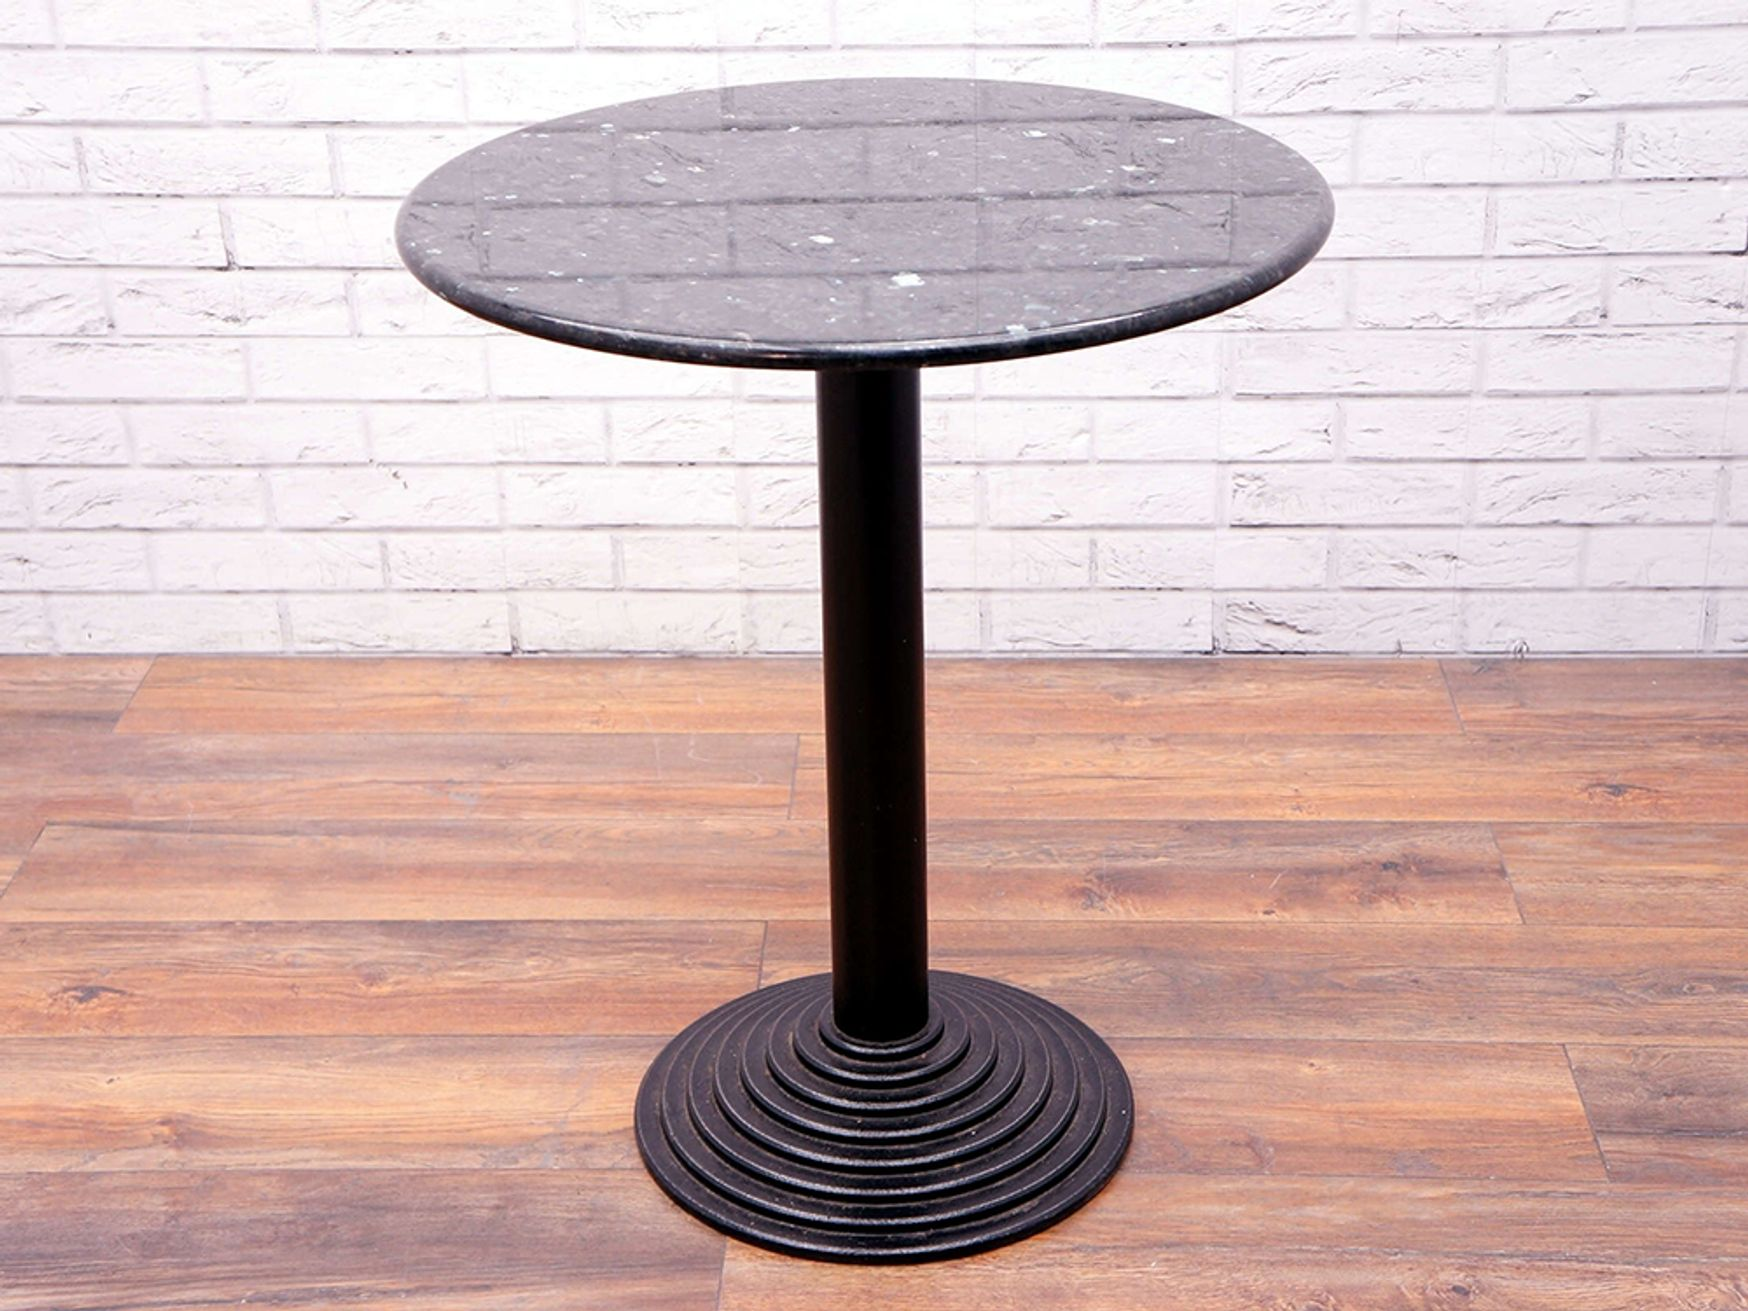 Used Circular Table with Granite Top